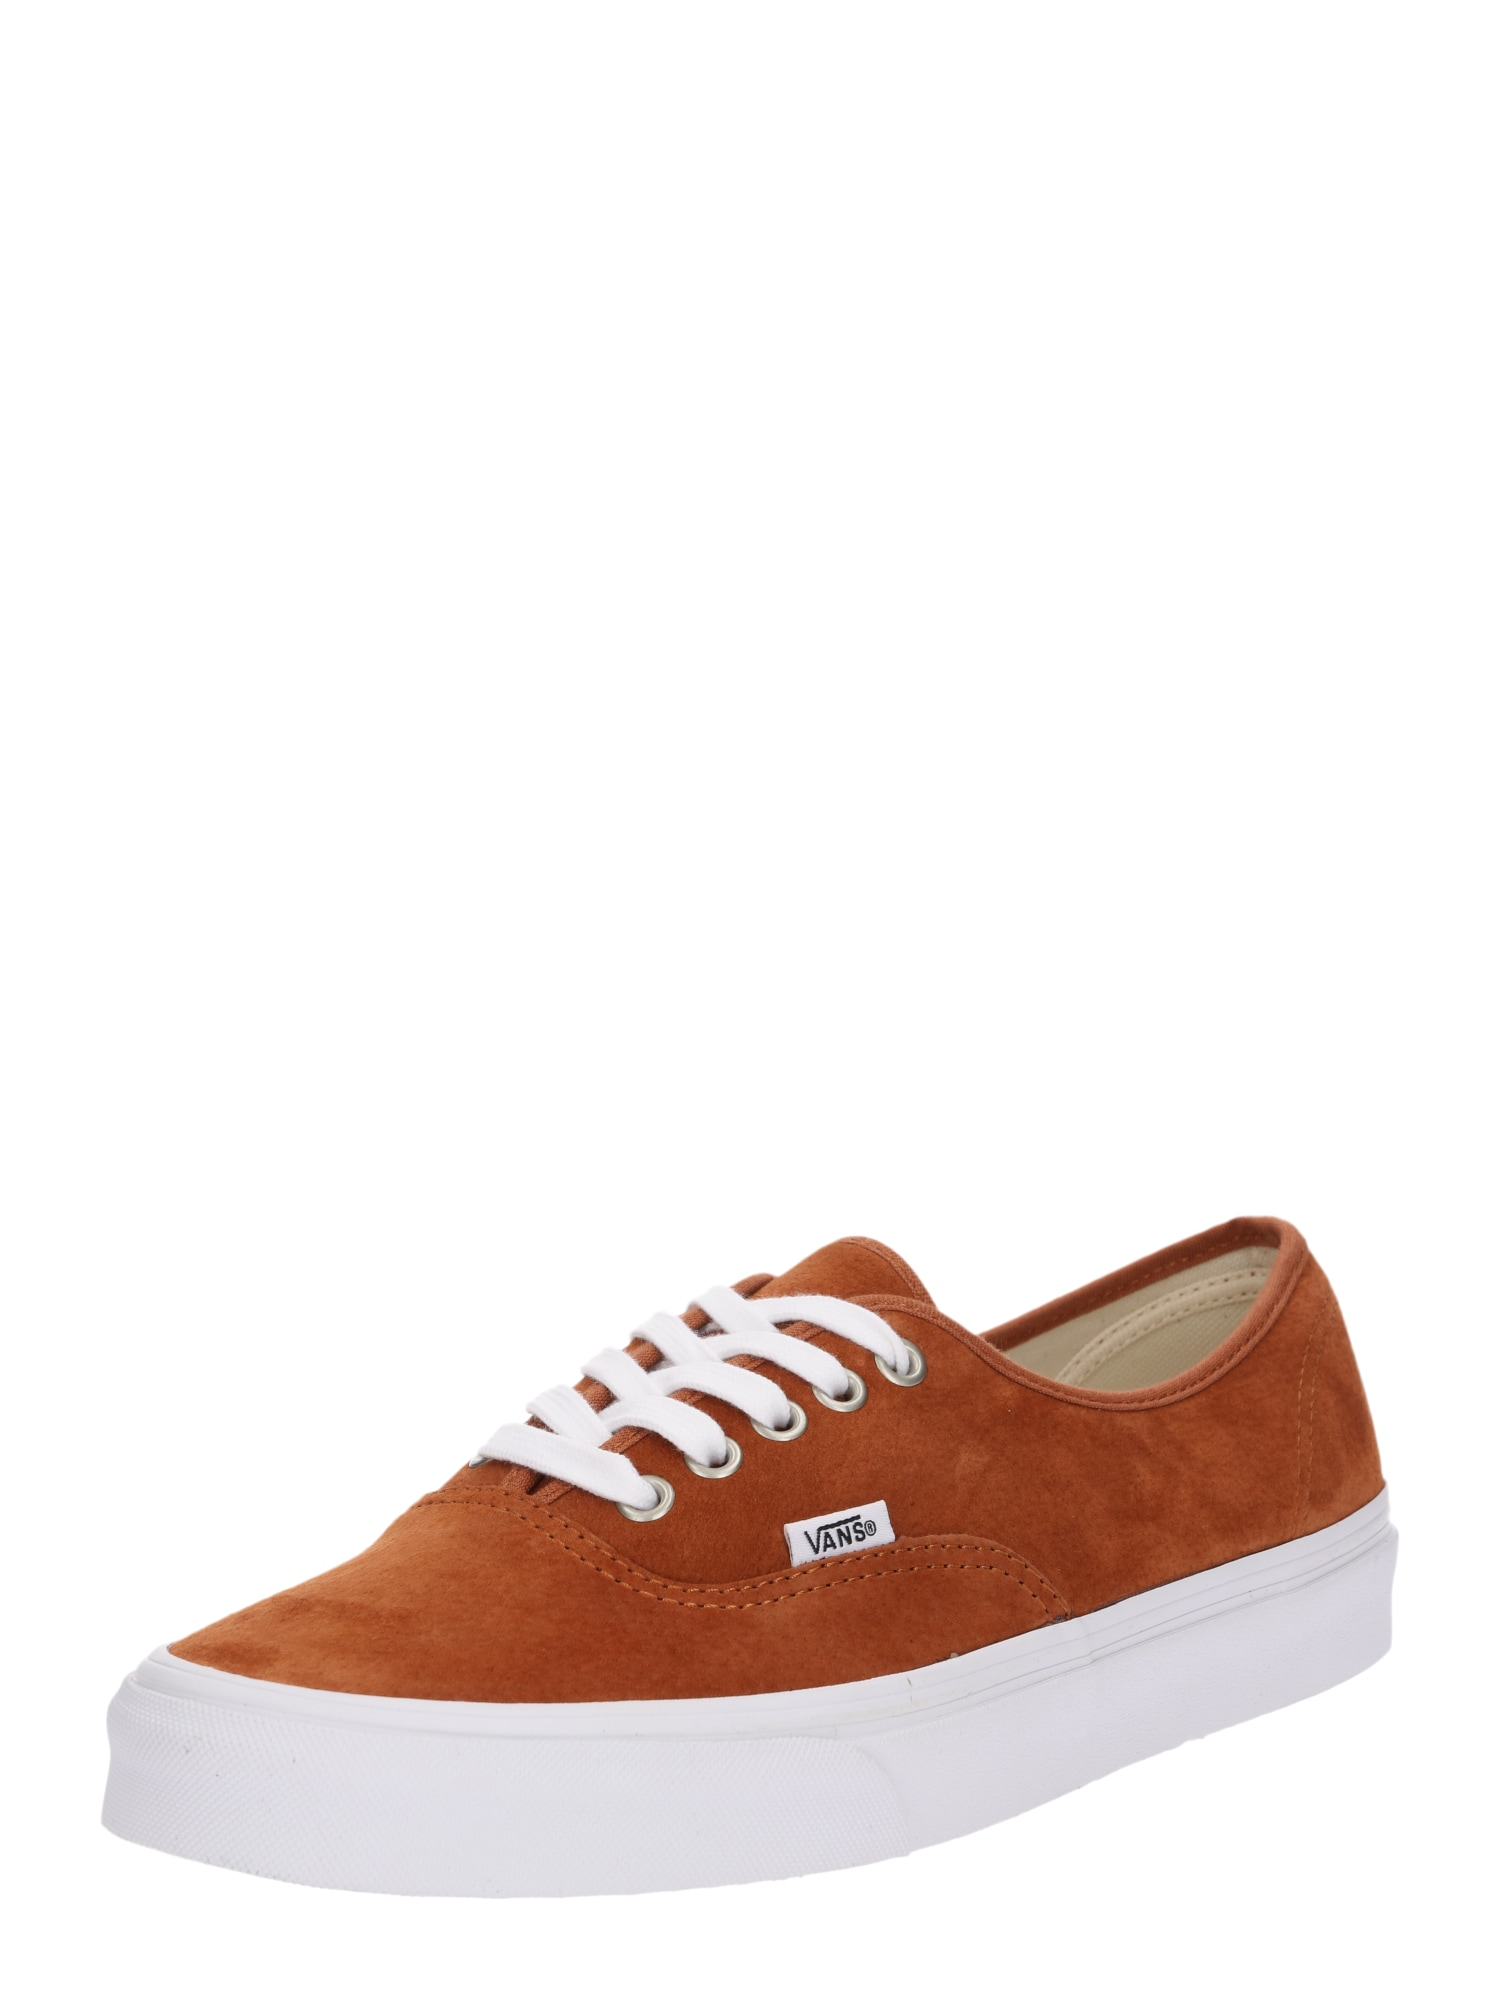 VANS, Heren Sneakers laag 'Authentic', cognac / wit